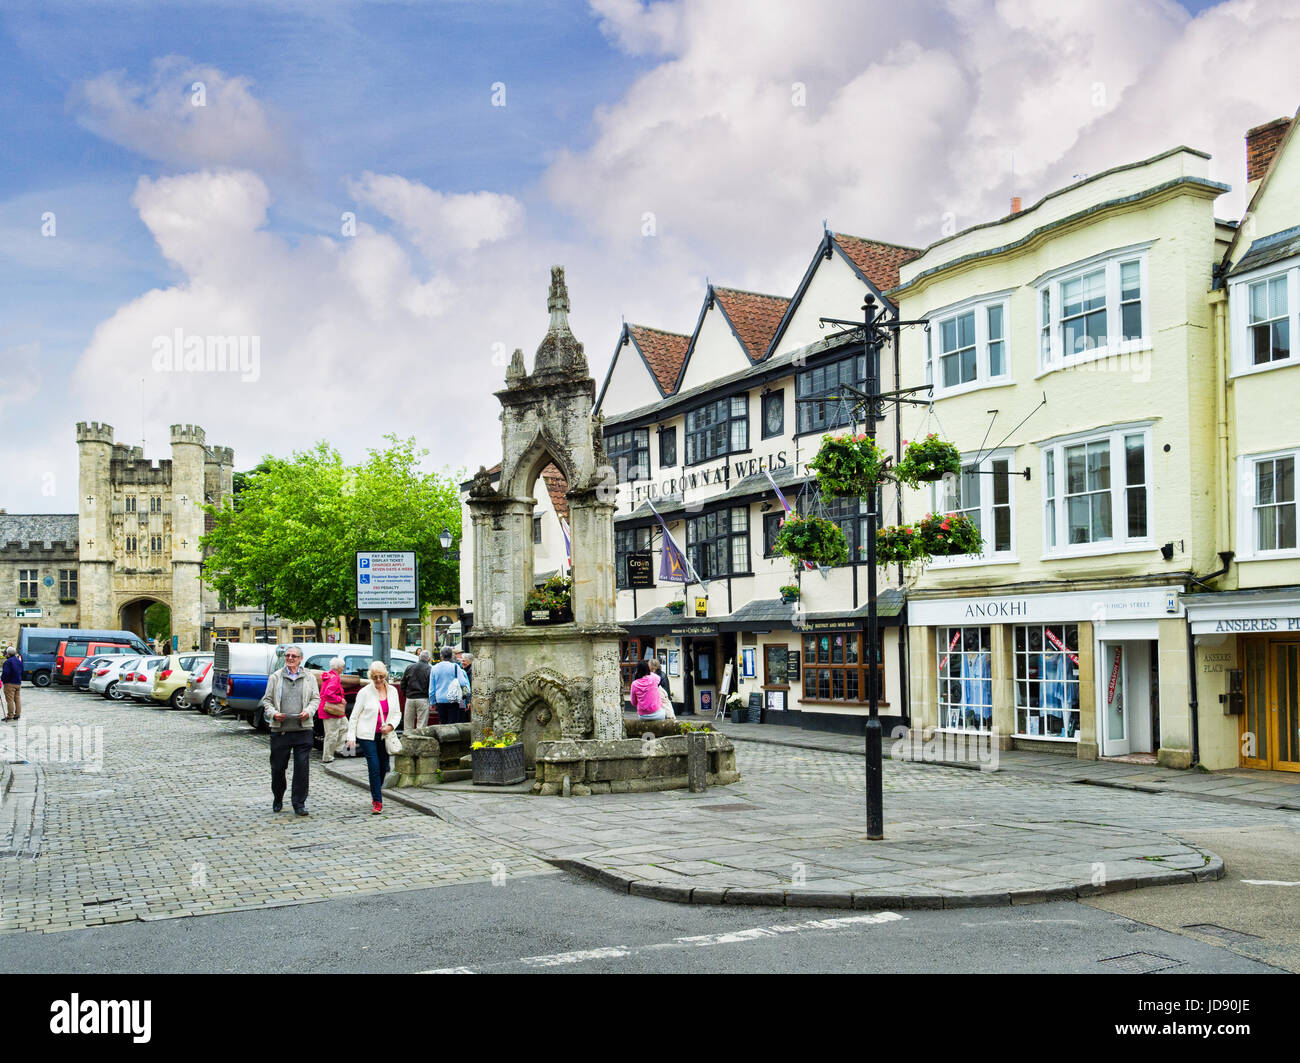 8 June 2017: Wells, Somerset, England, UK - The town centre of the old cathedral city of Wells, with the Market Stock Photo